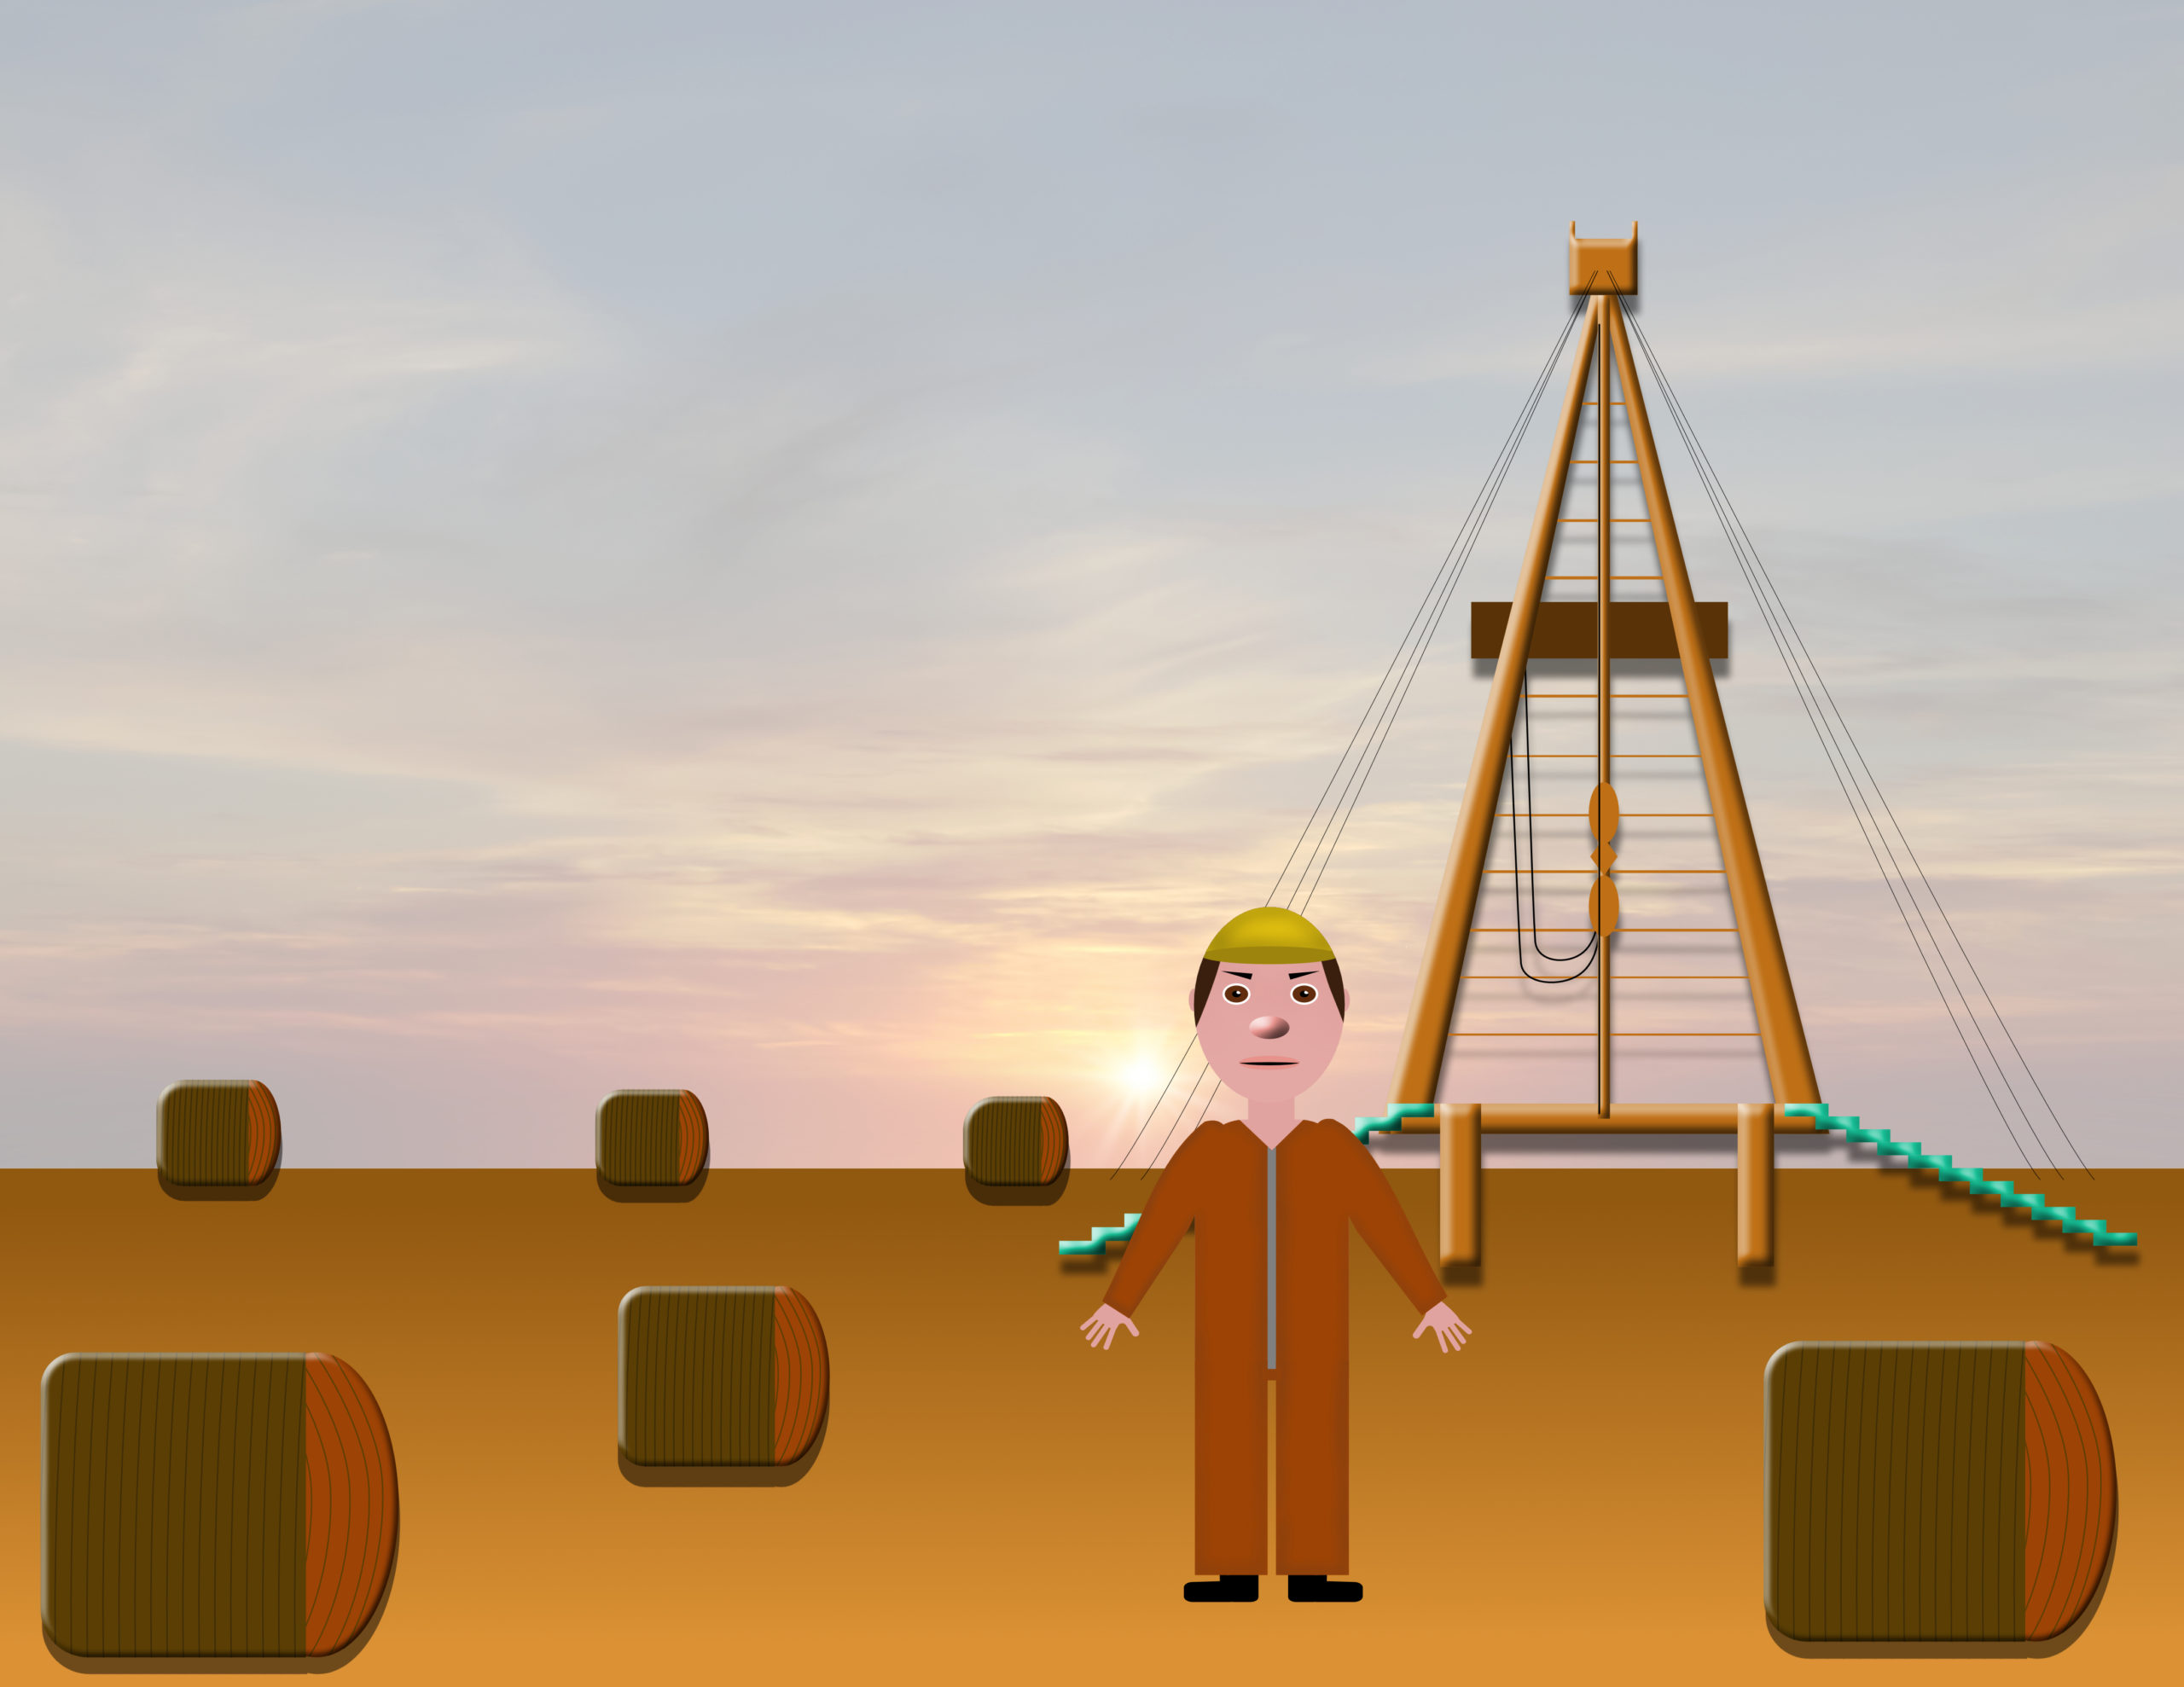 Ollie the Oil Field Worker